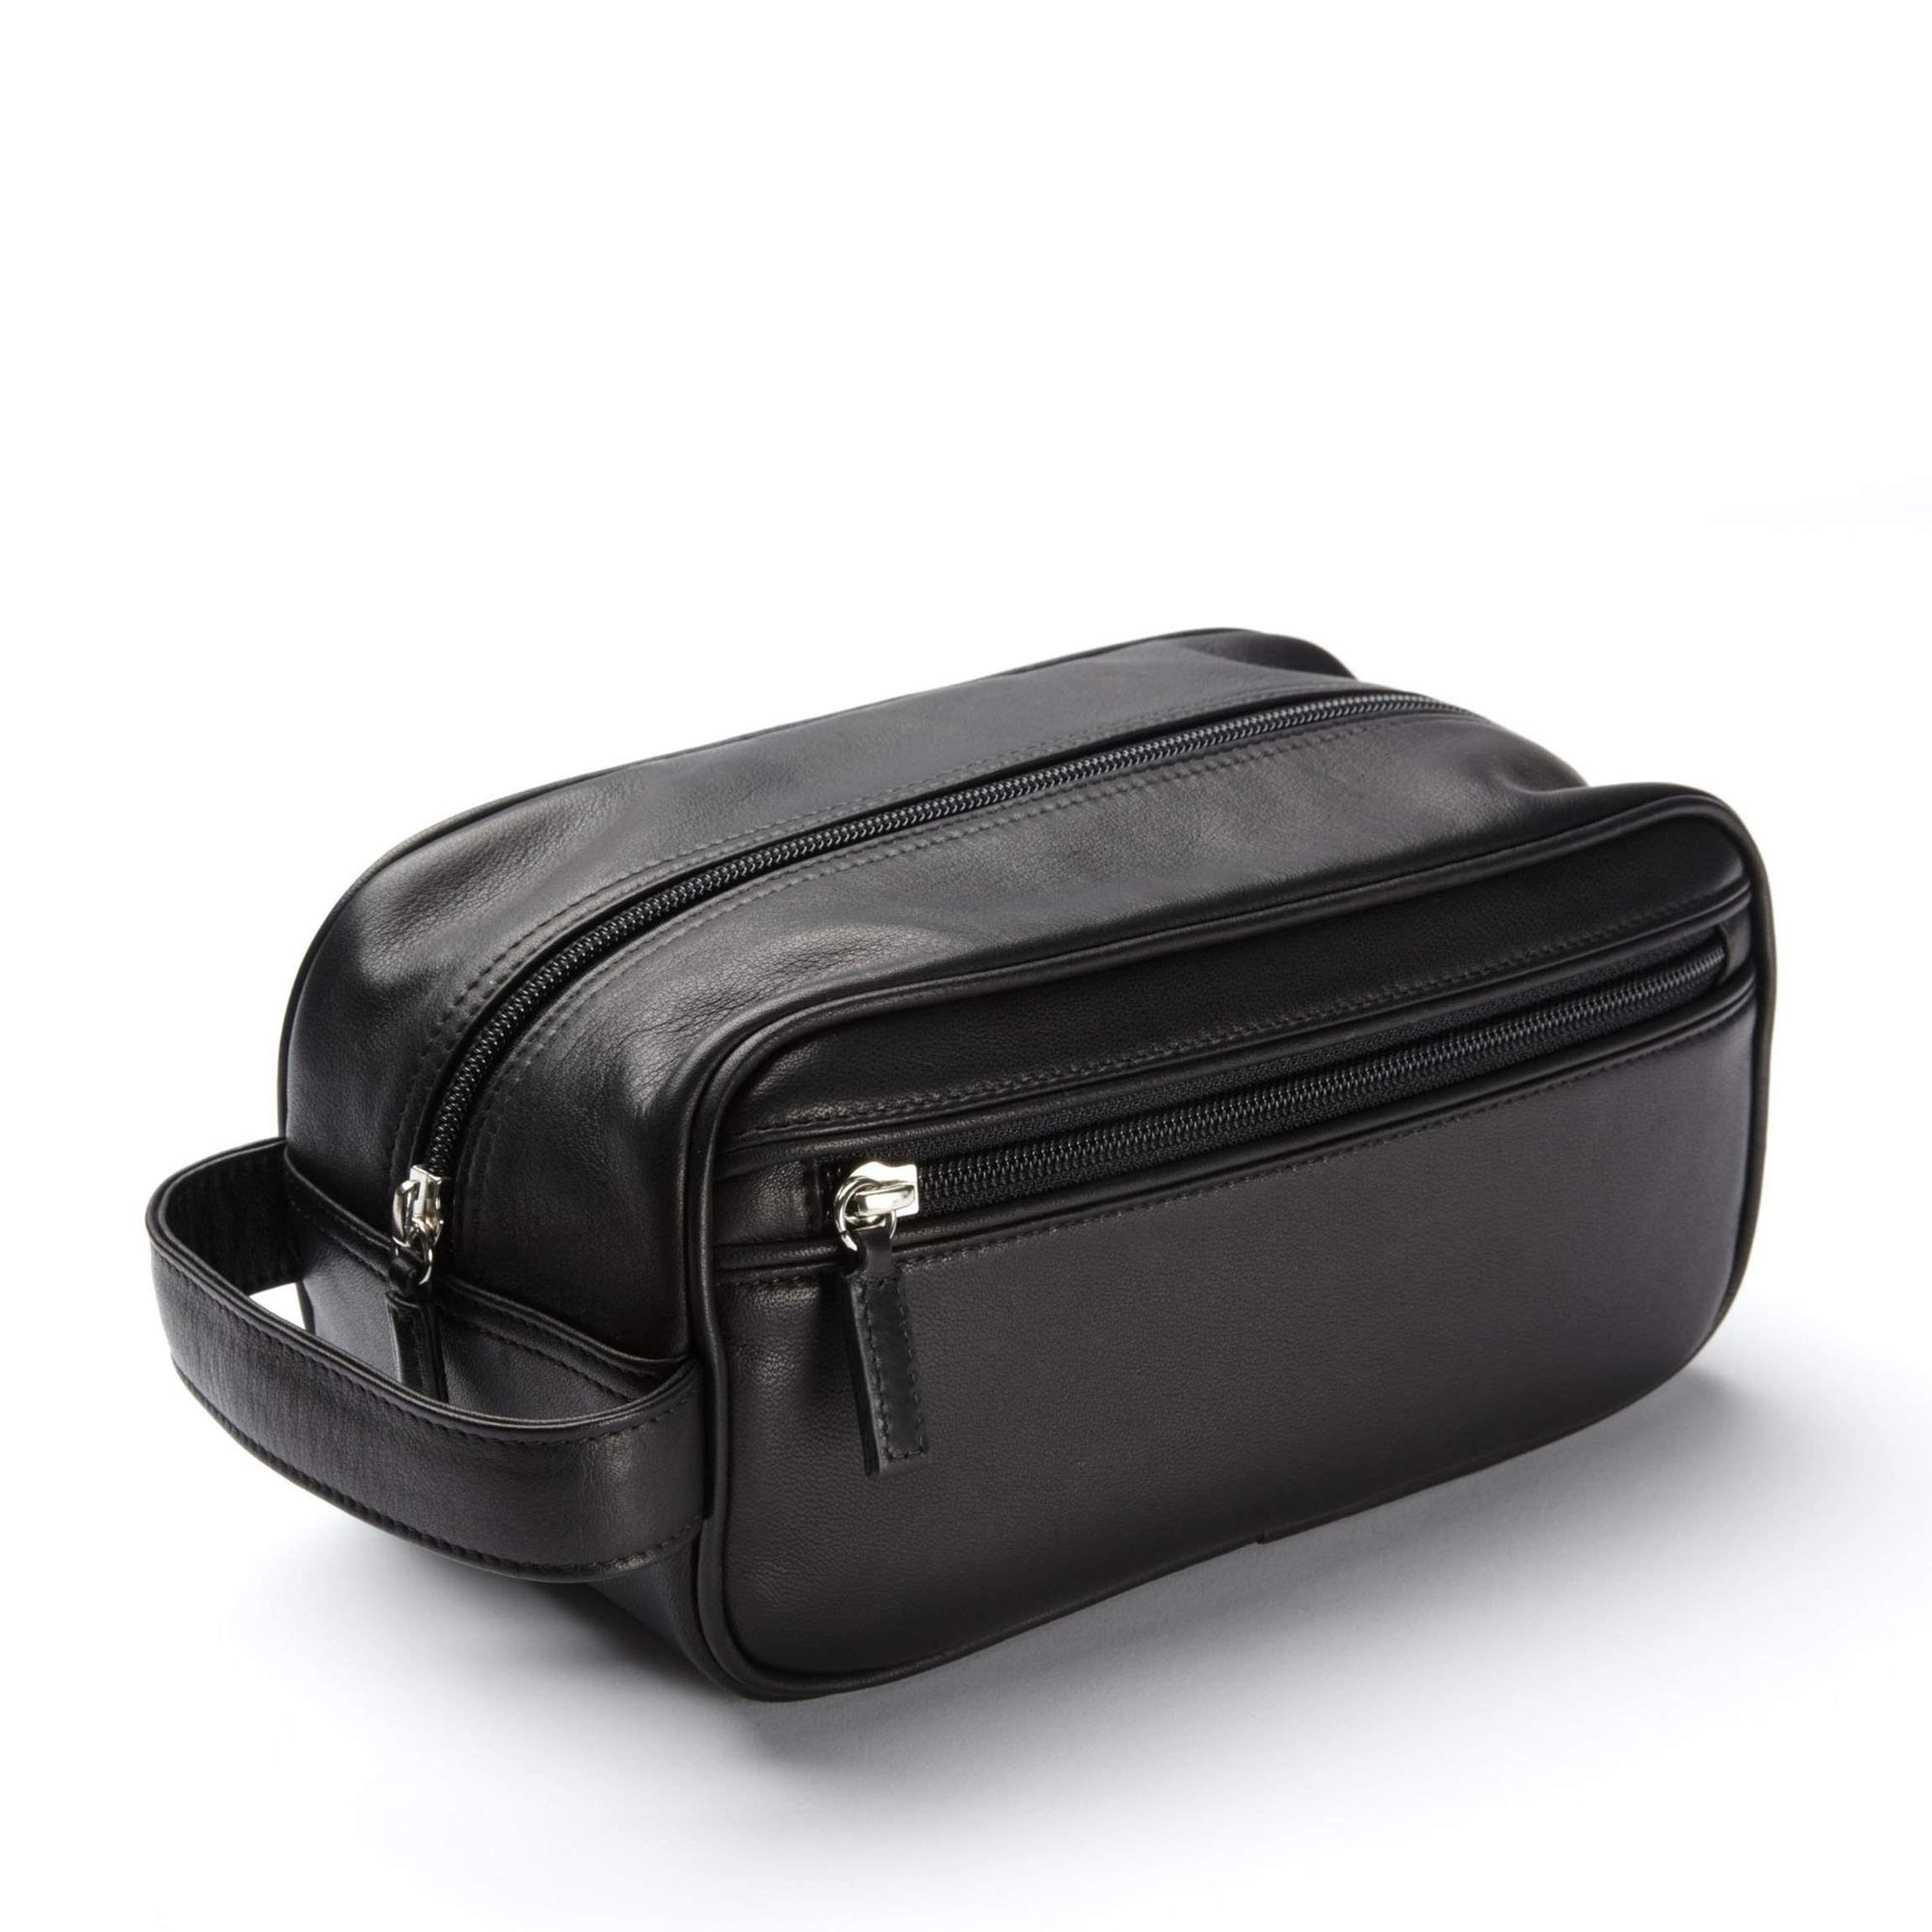 Leatherology Small Shave Toiletry Bag - Full Grain Leather - Black Onyx (black)